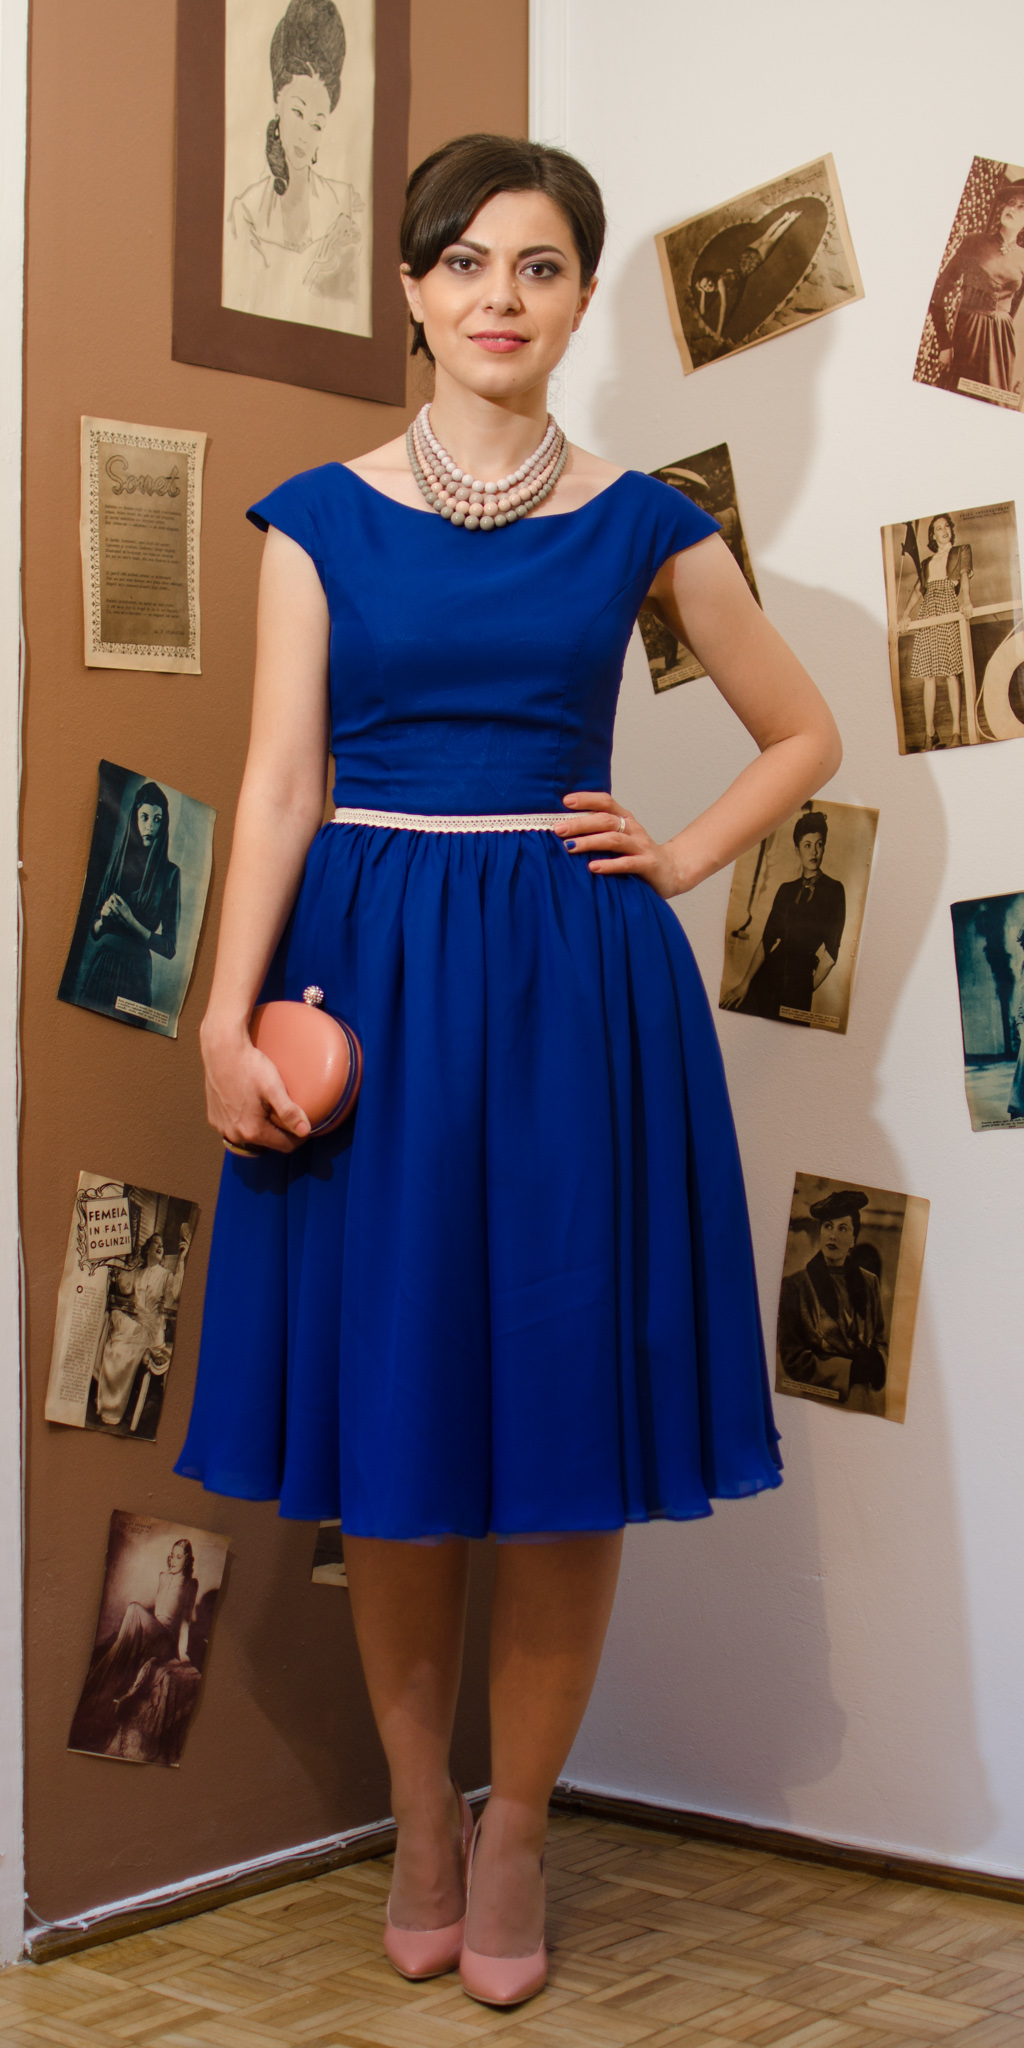 50s diva style cobalt blue dress sheer flowy chiffon dusty pink heels clutch statement necklace vintage retro